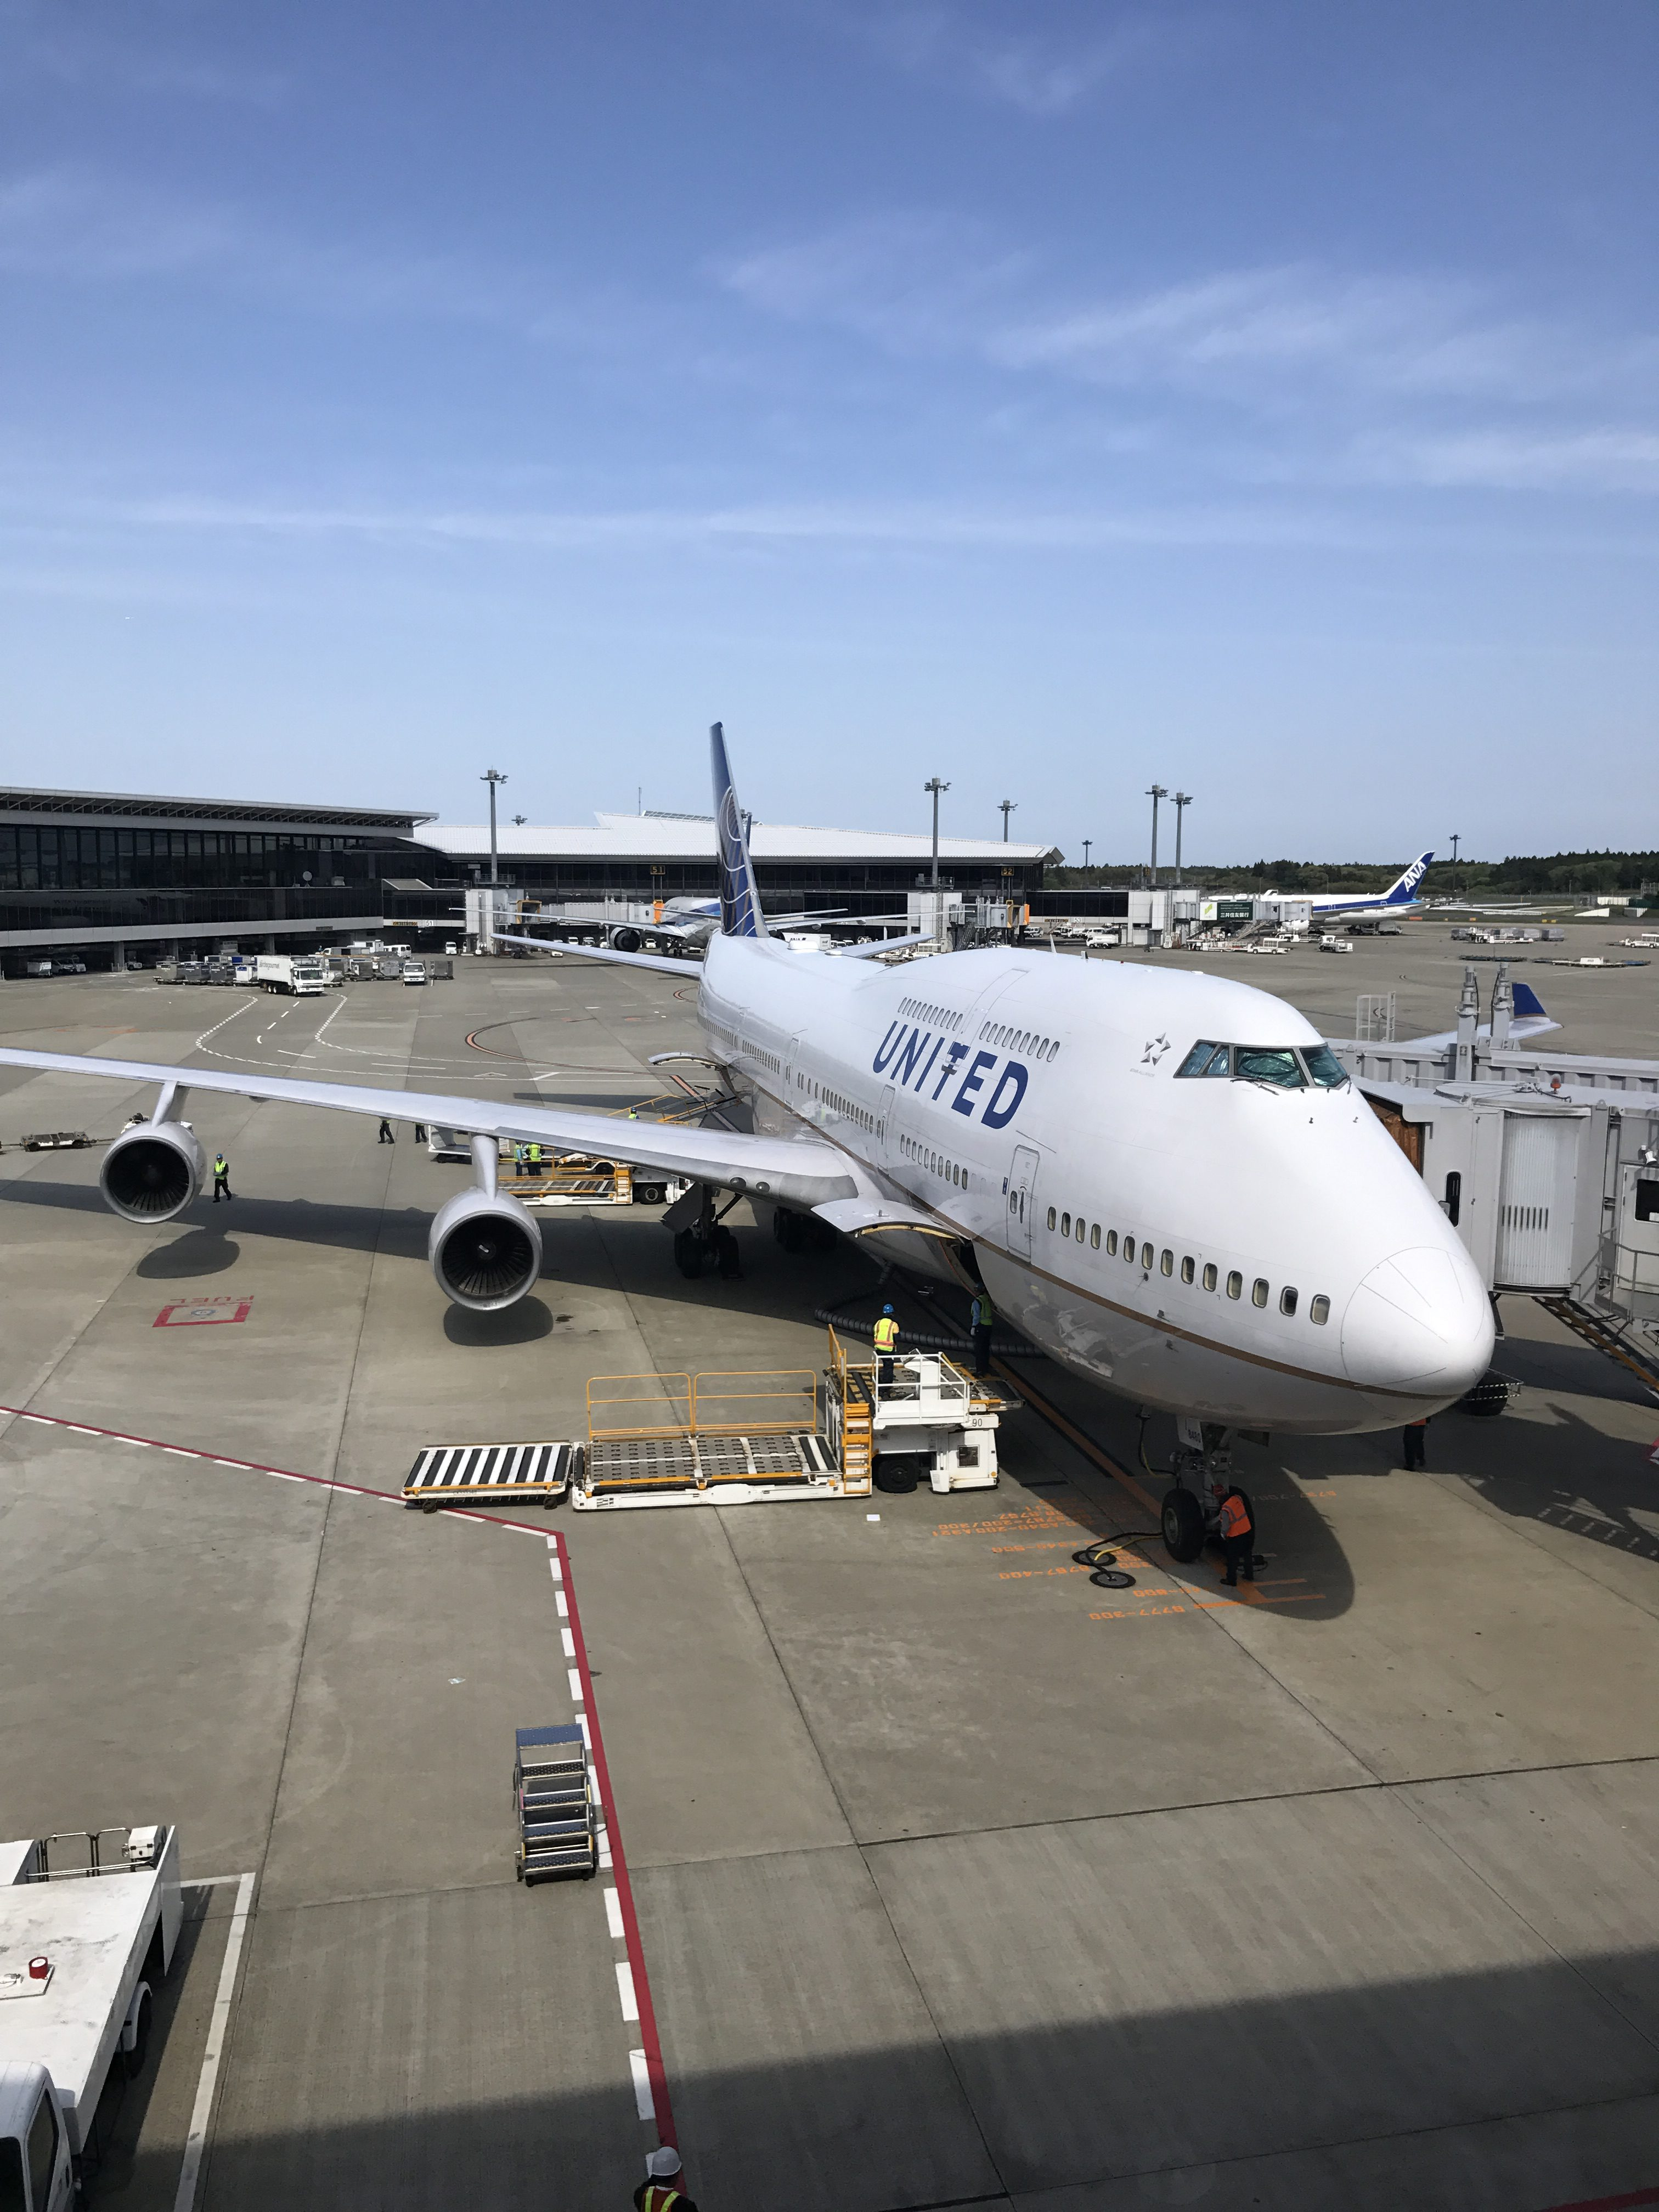 Flight Review: United Airlines First Class Boeing 747-400 San Francisco to Tokyo